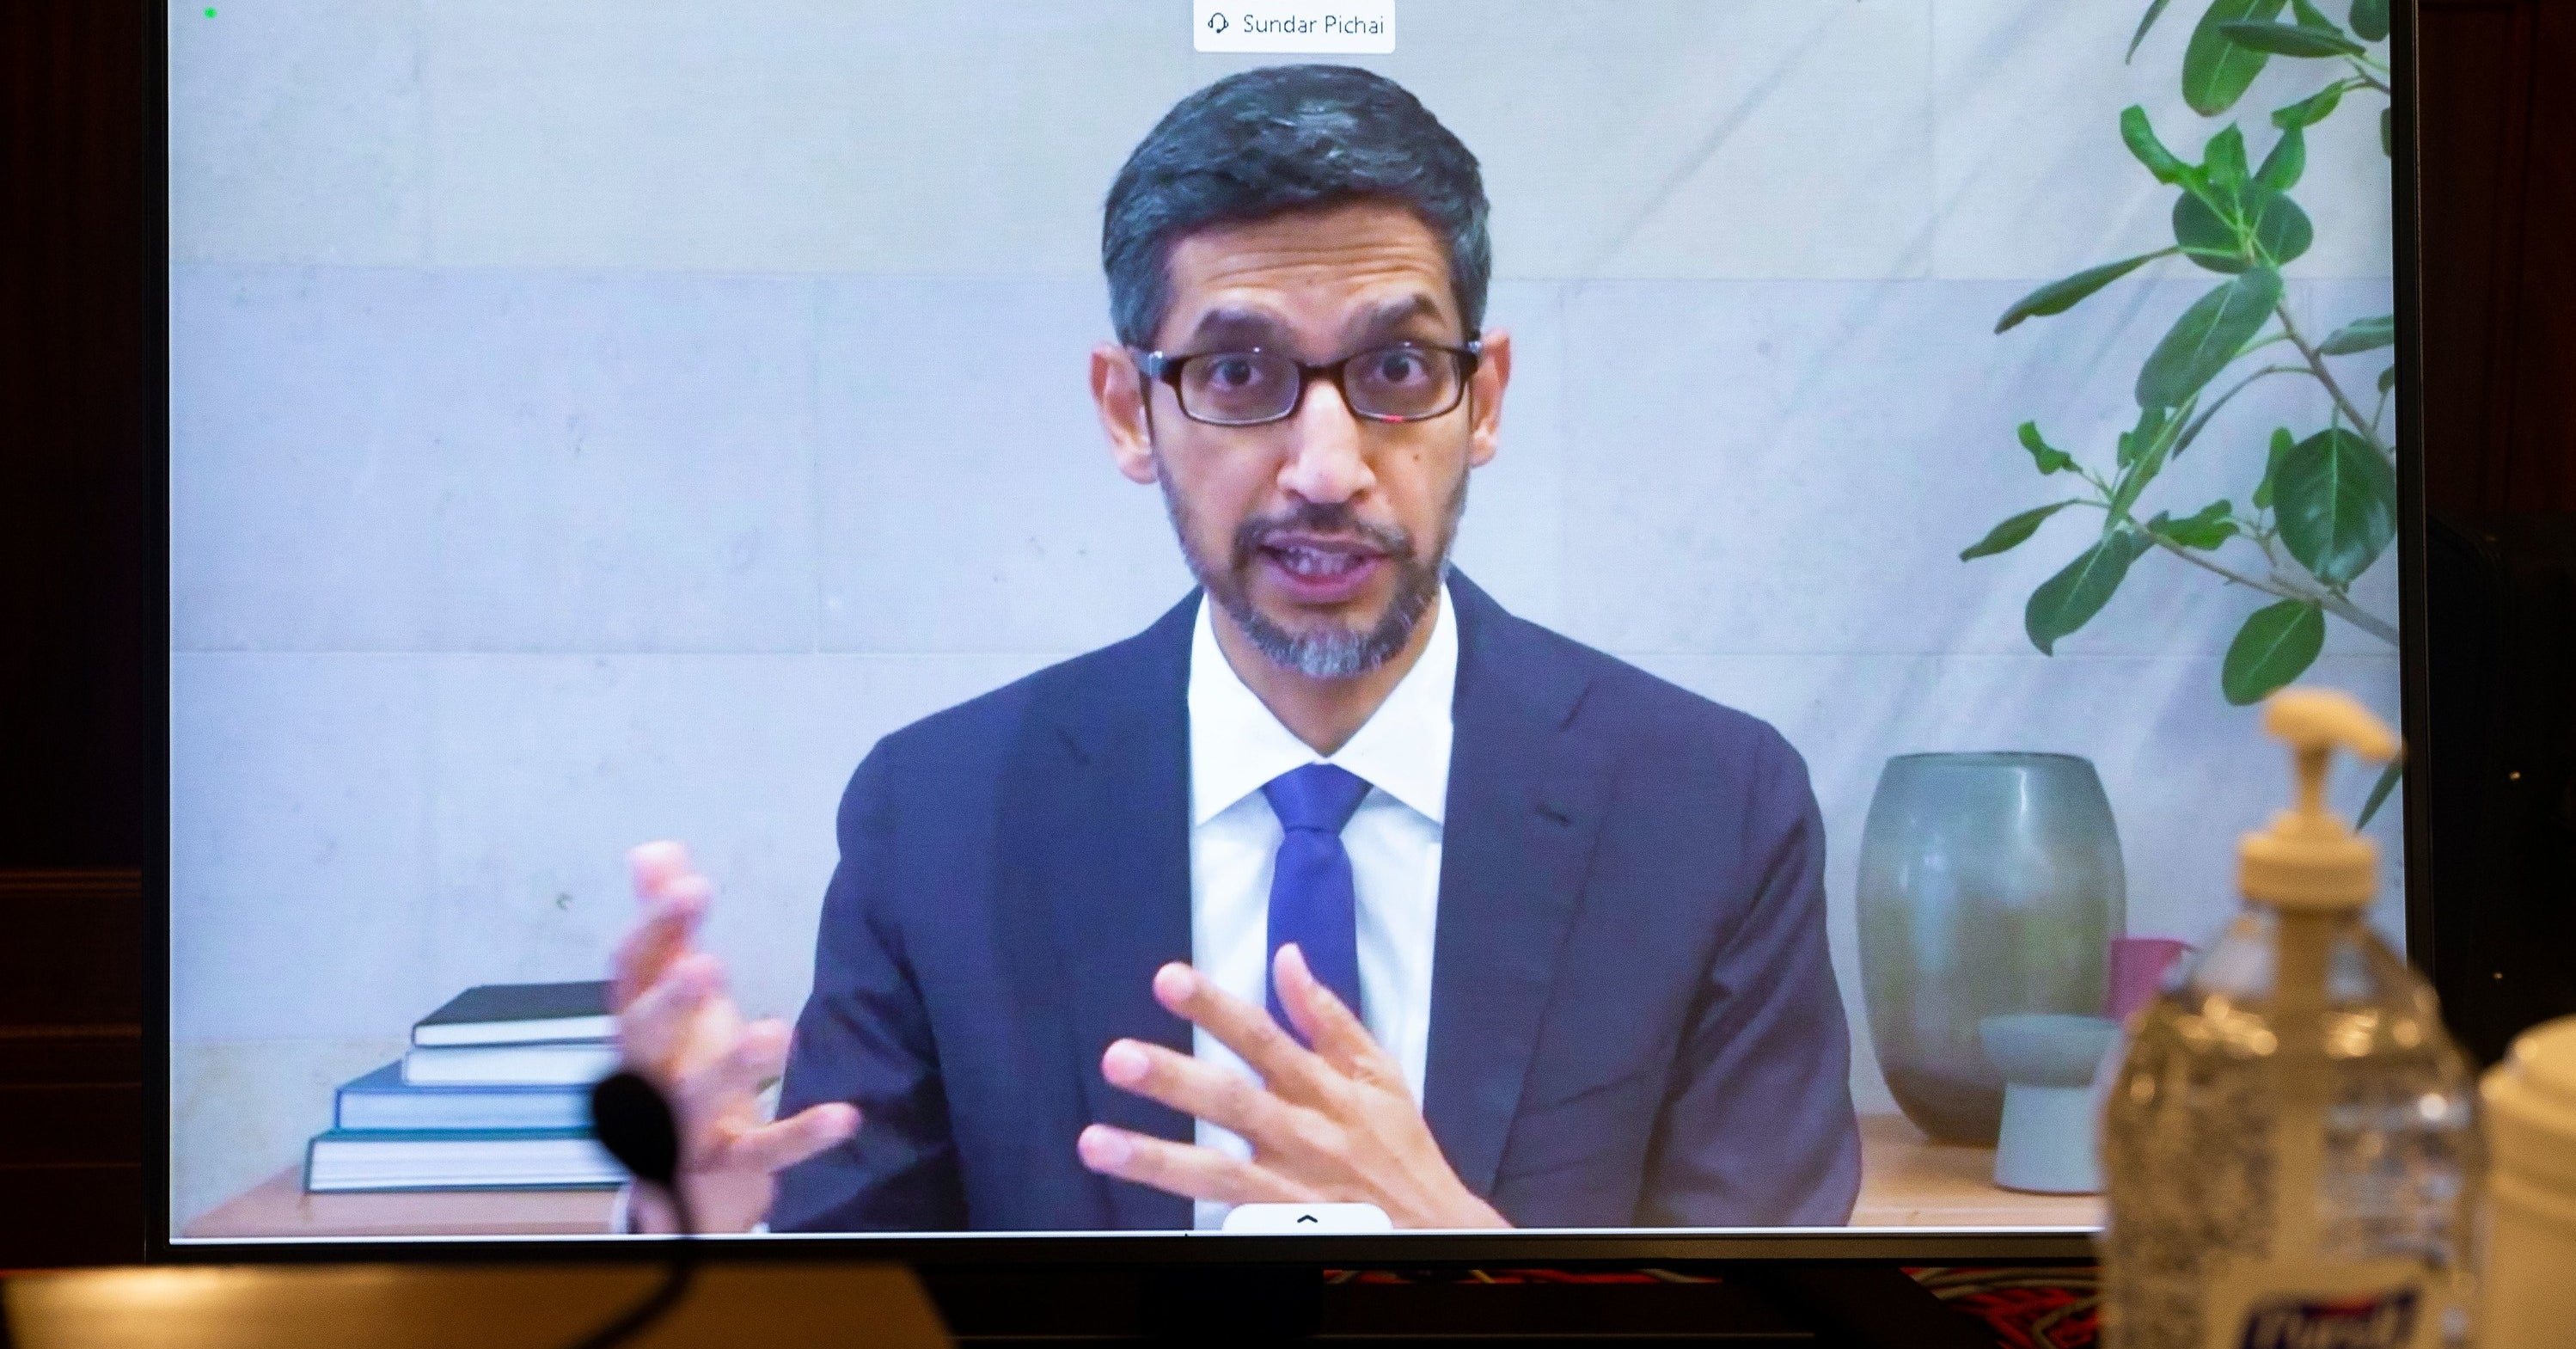 US Senators Can't Be Bothered To Pronounce The Google CEO's Last Name Correctly